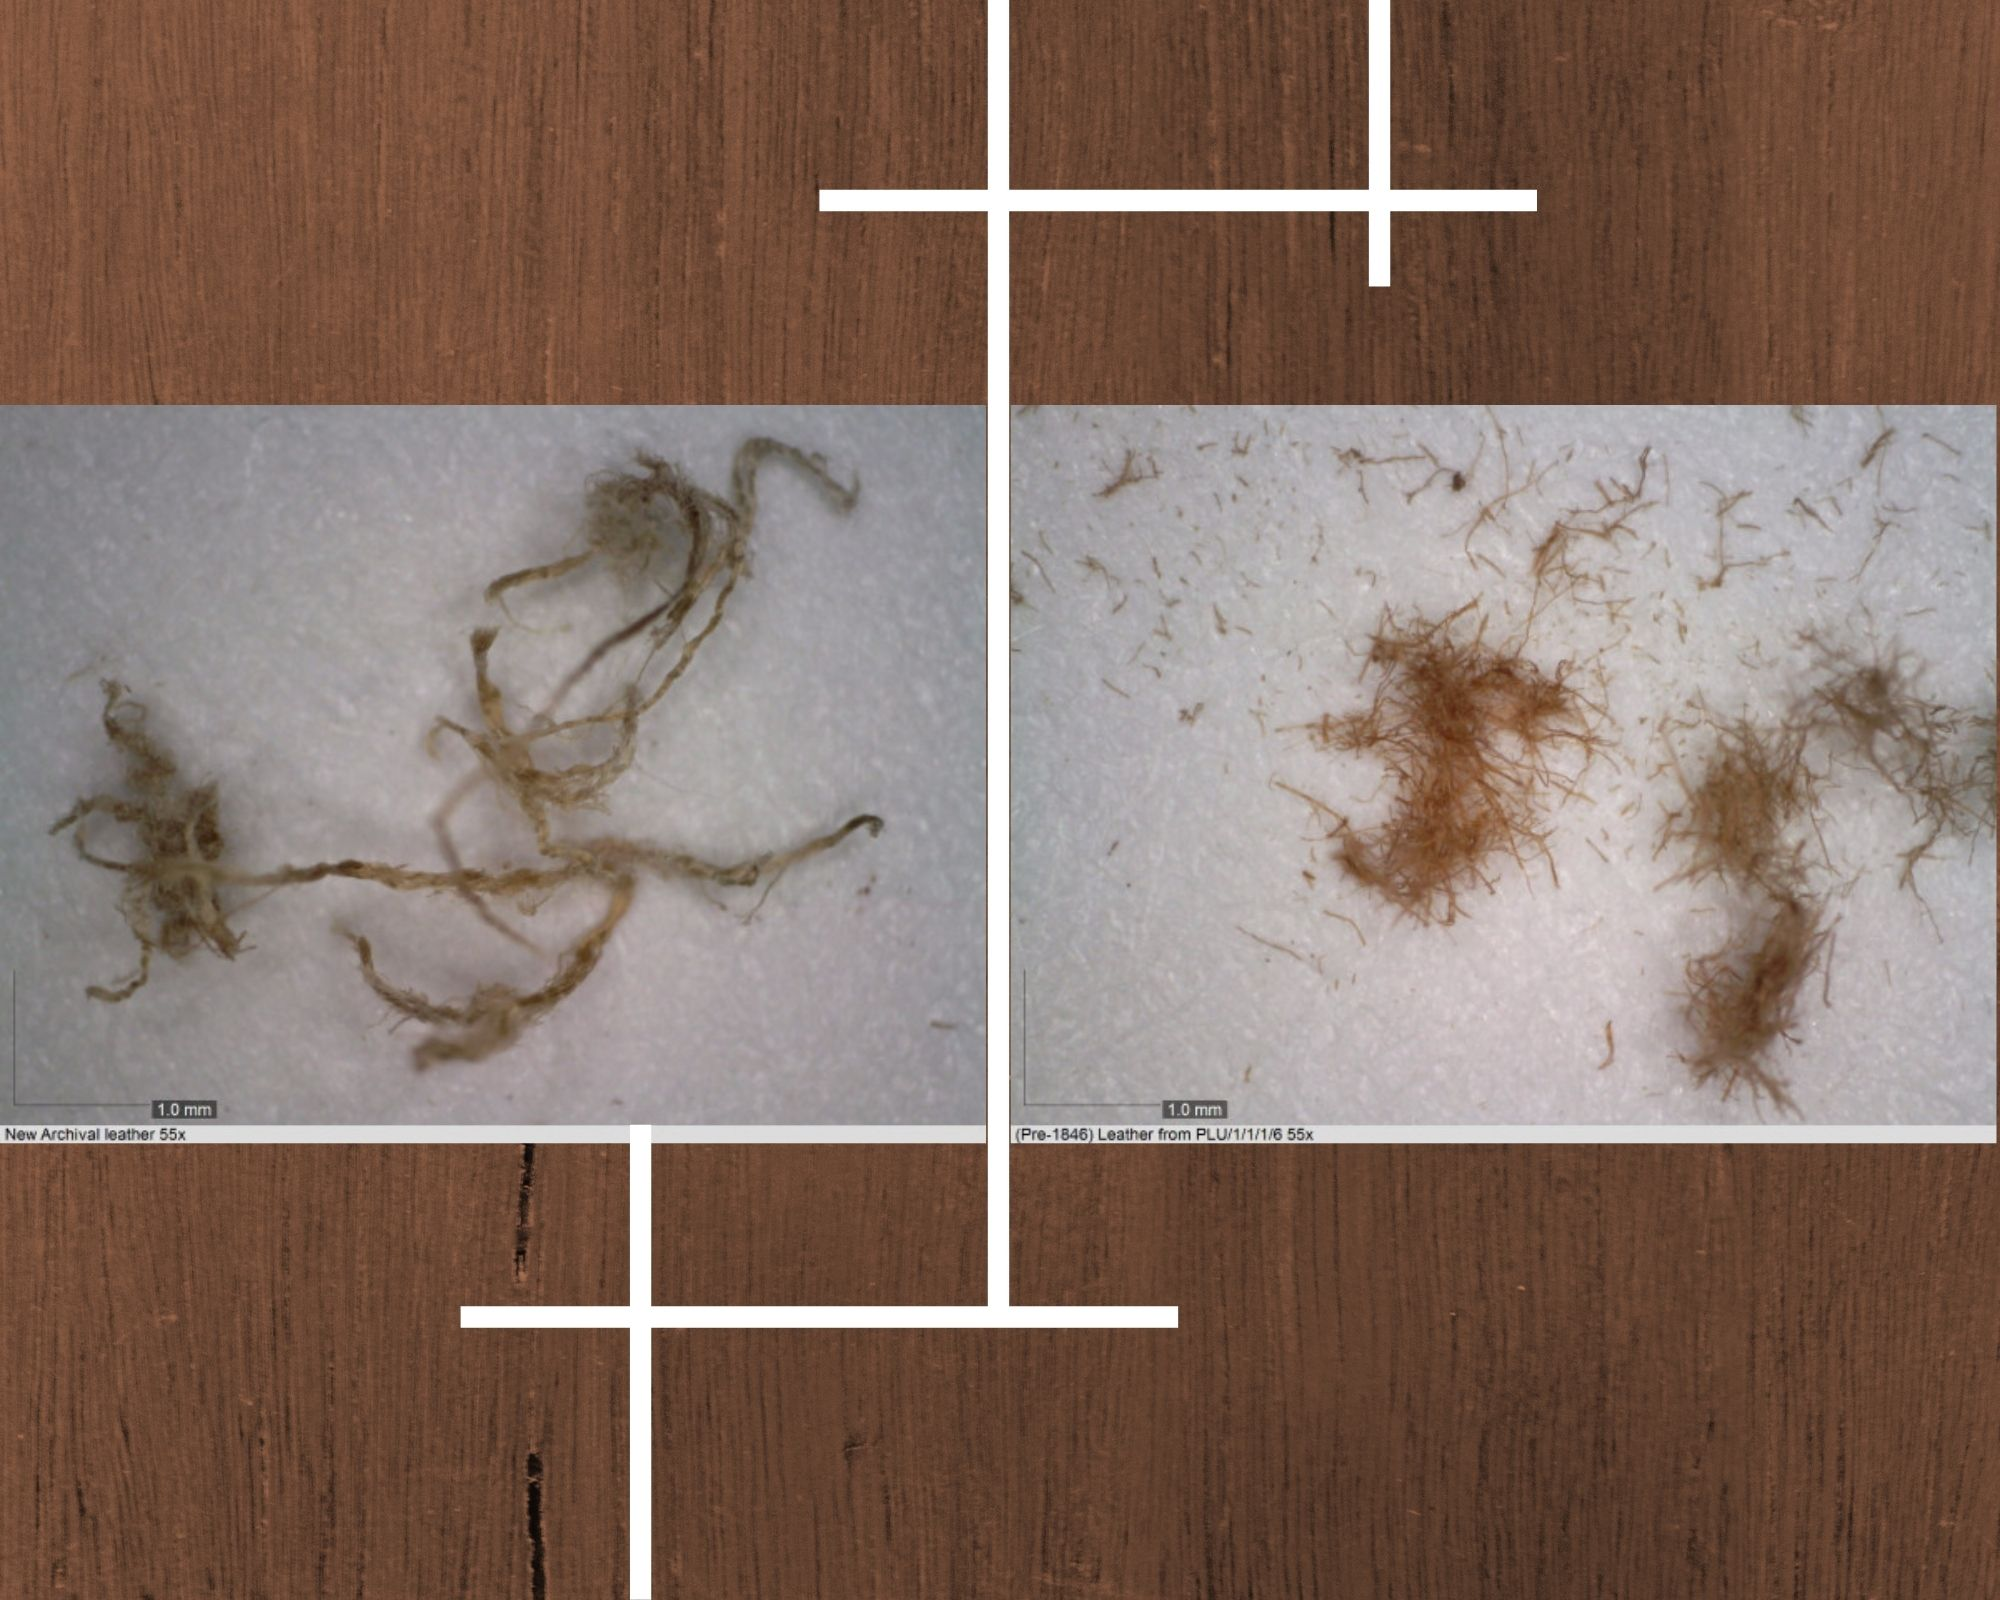 Image on the left depicts a fiber sample from new leather at 55x magnification. Image on the right depicts a fiber sample from deteriorating leather at 55x magnification.